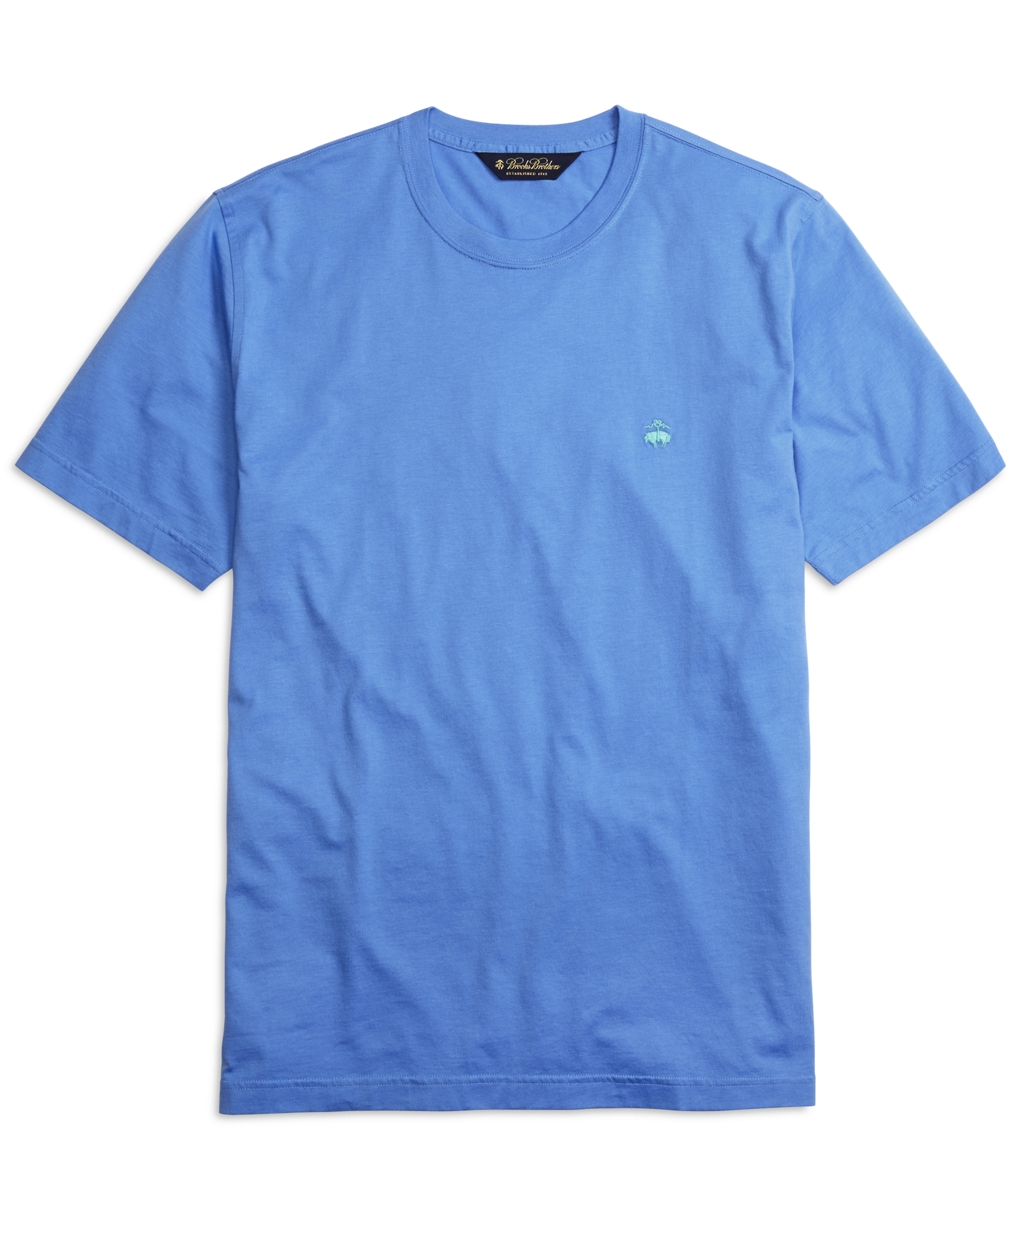 Brooks brothers supima cotton crewneck tee shirt in blue for Brooks brothers tall shirts